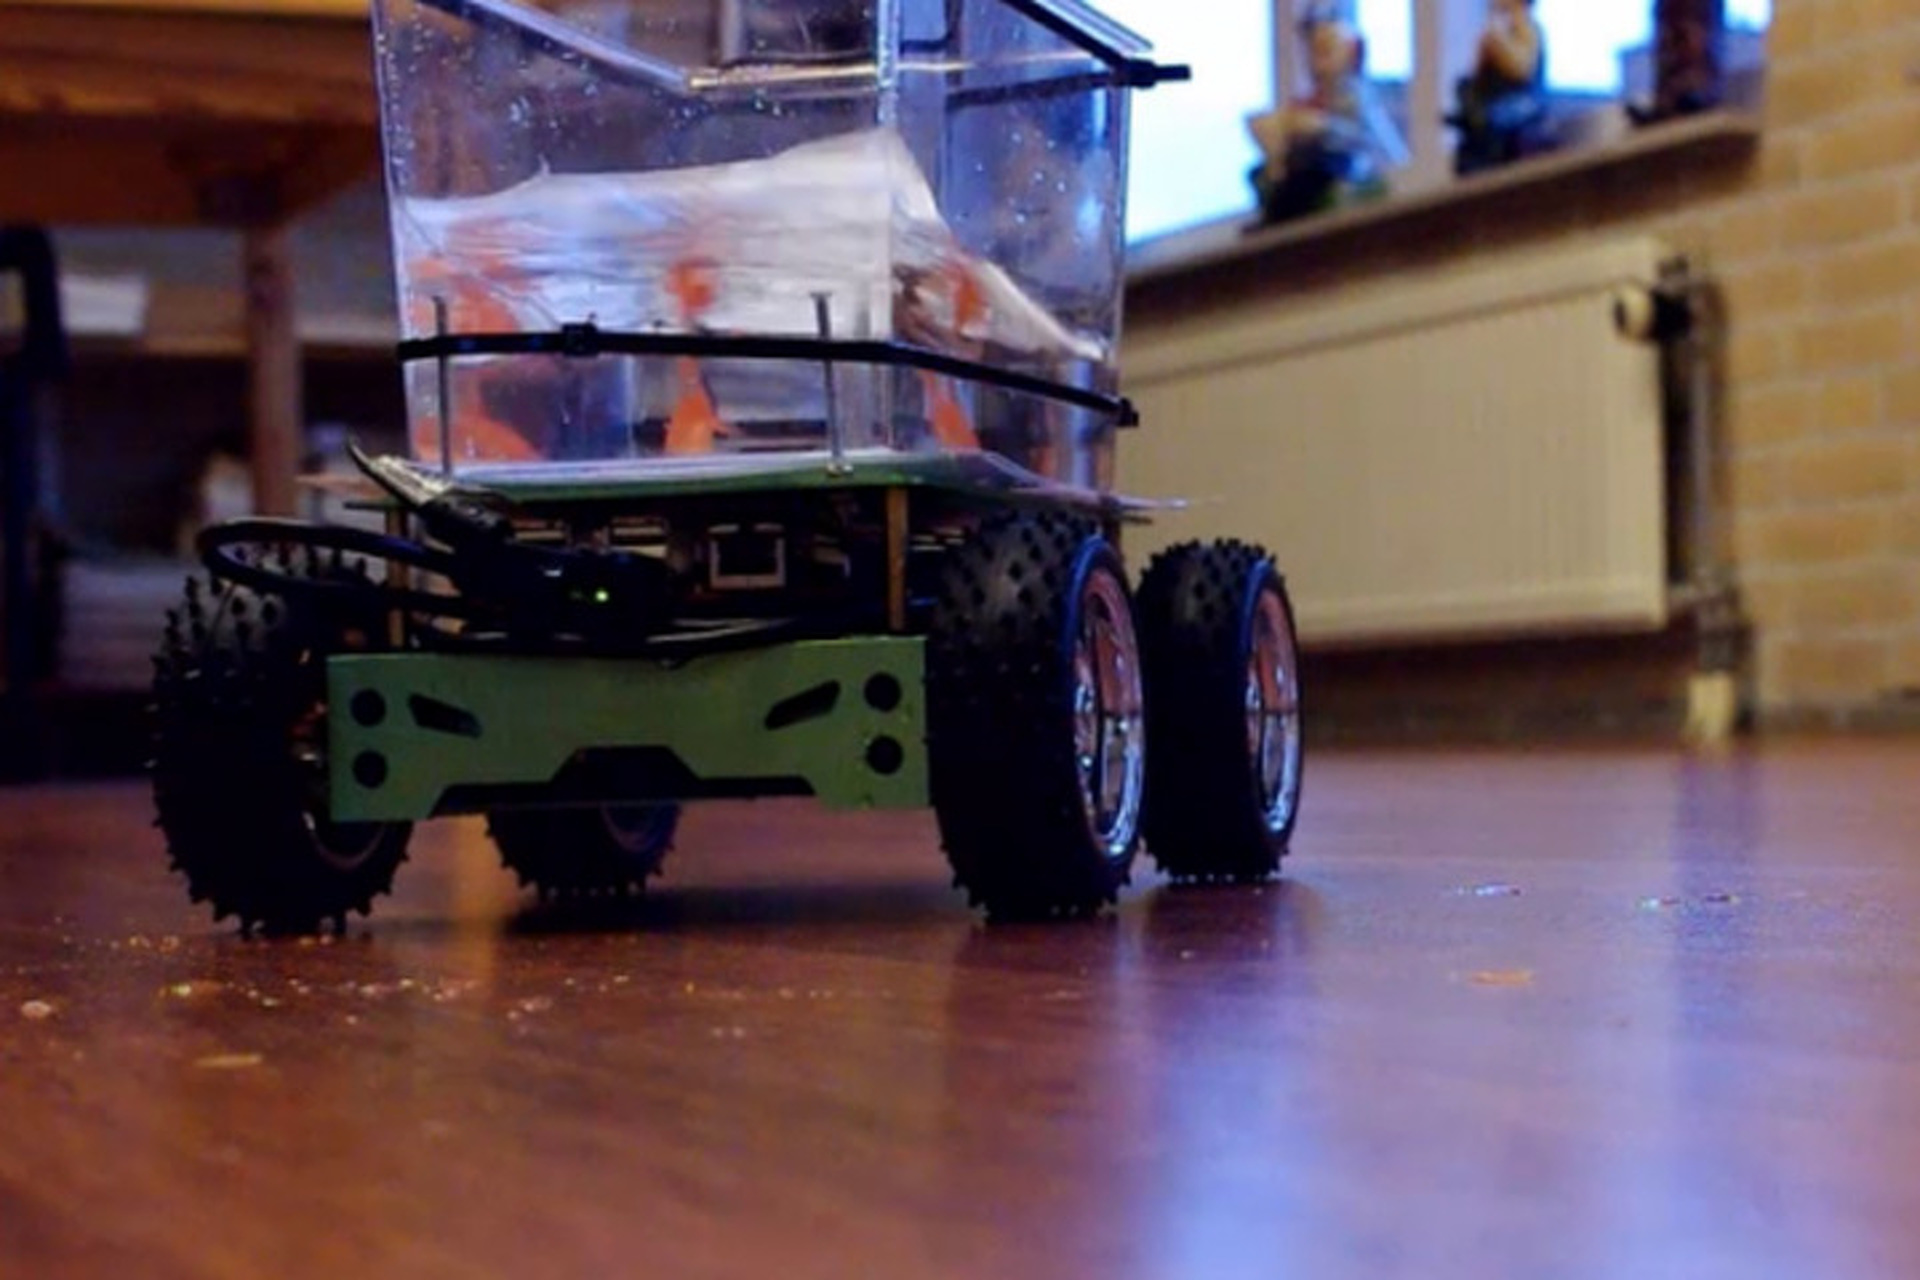 Dutch Designers Build Go-Kart for Goldfish Tank that It Can Actually Steer! [Video]